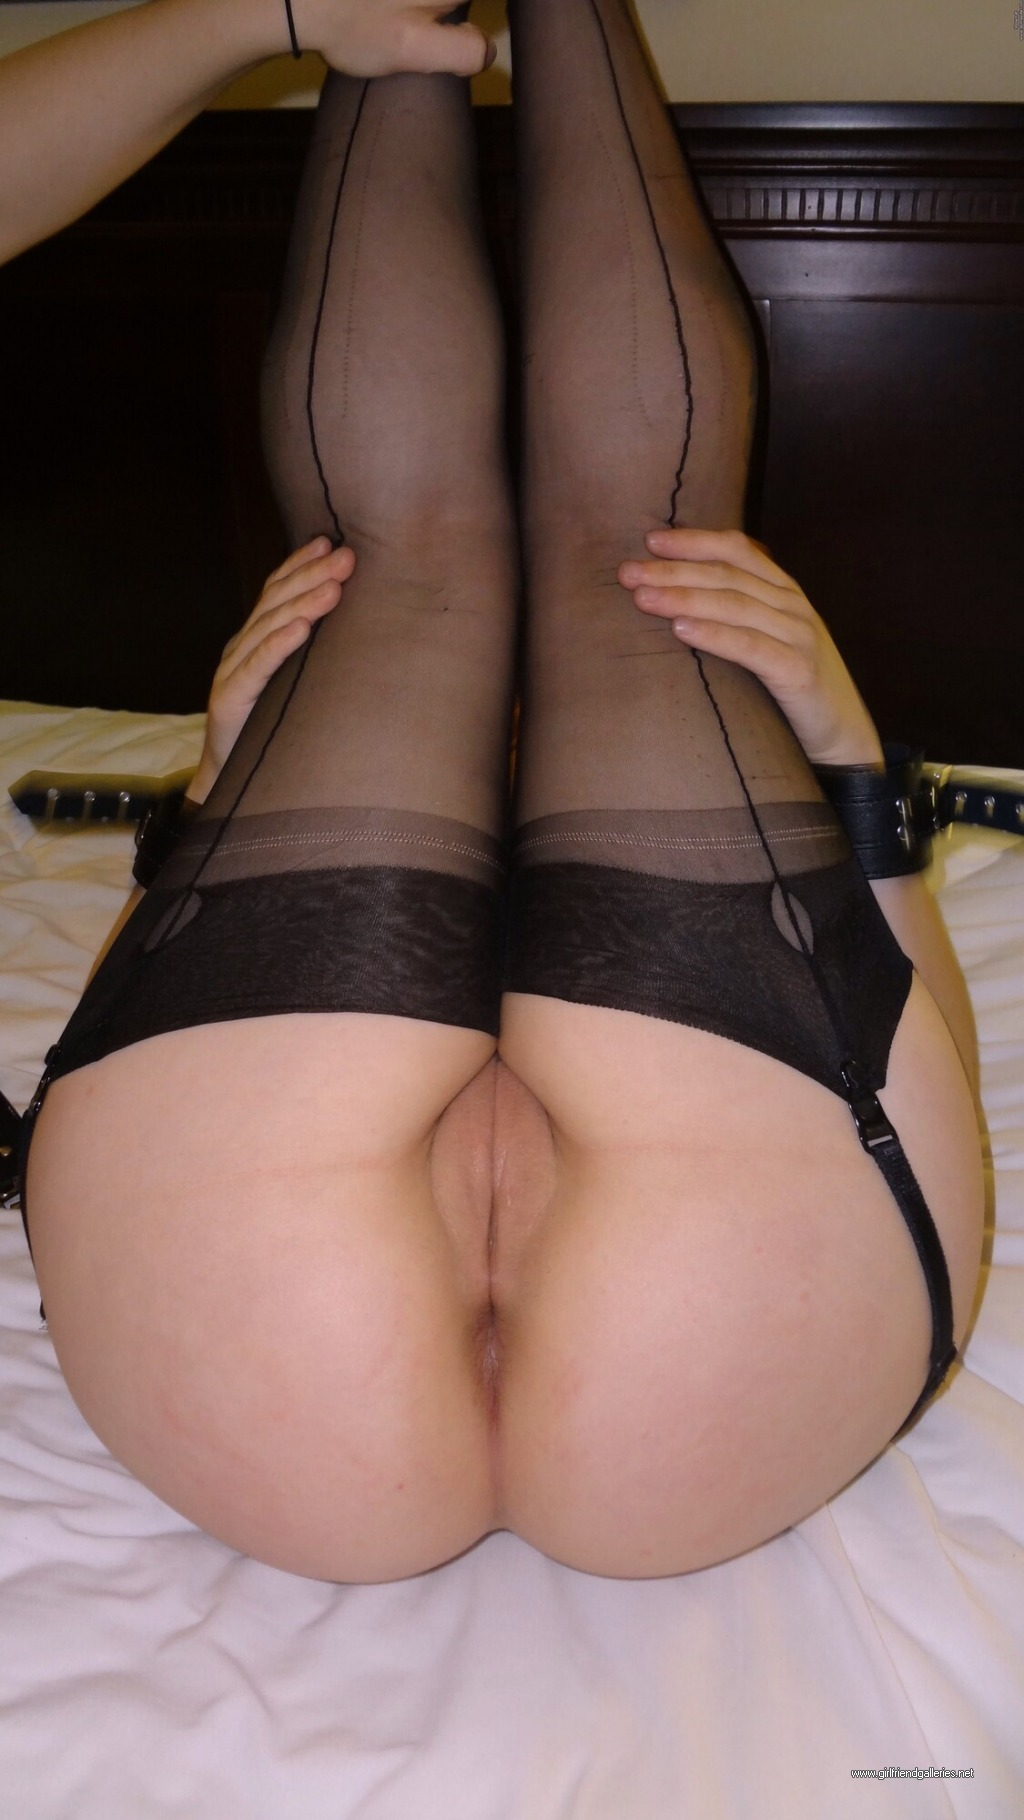 Danielle posing and fucking in black stockings